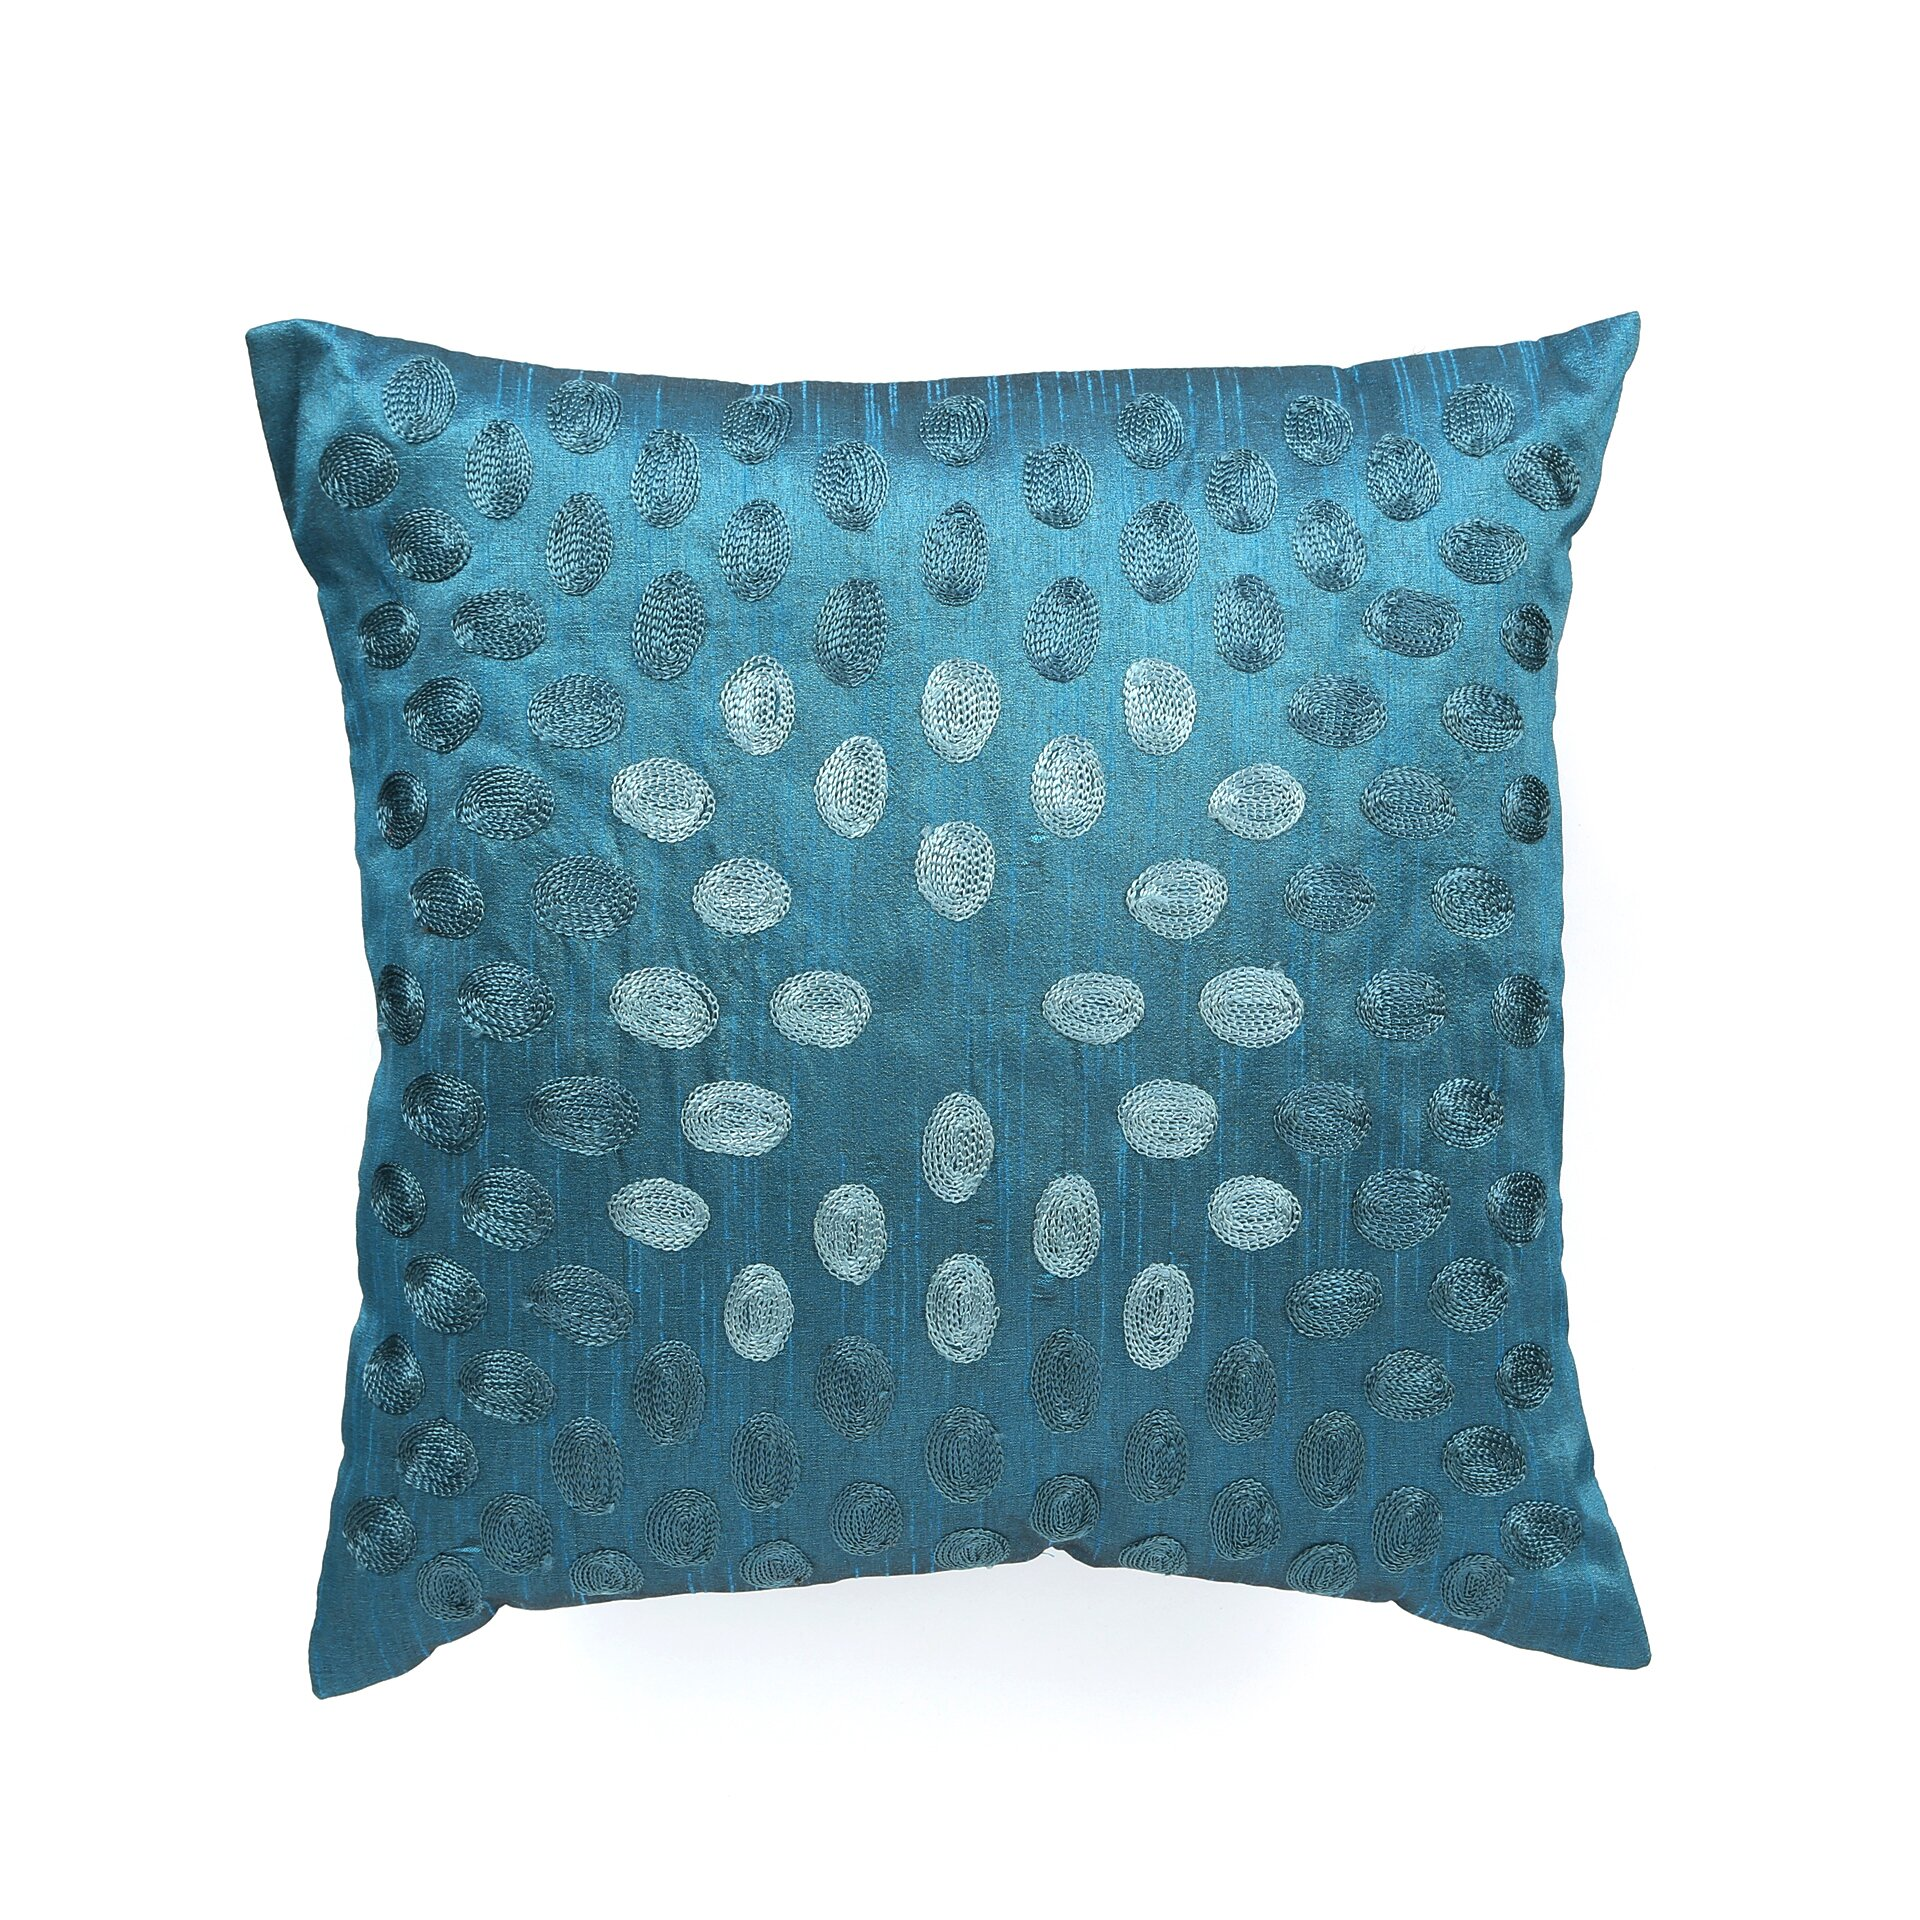 Decorative Pillow Wayfair : Wildon Home Throw Pillow & Reviews Wayfair